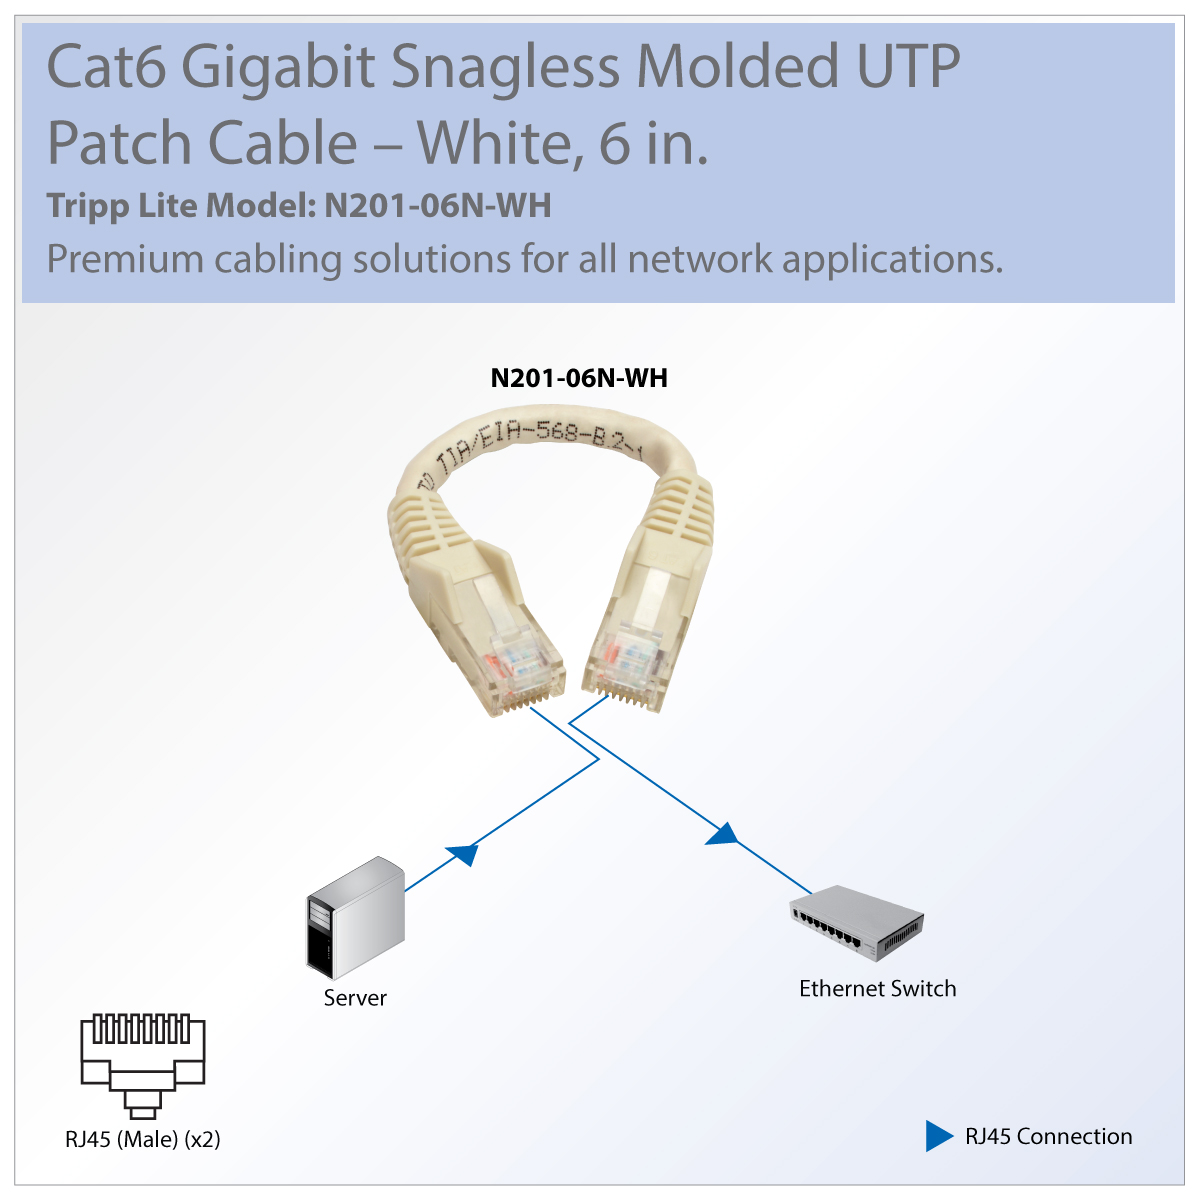 Tripp Lite Cat6 Gbe Snagless Molded Patch Cable Utp White Rj45 M To 550mhz Standards For Switch Router Modem Delivers Superior Signal Quality With Top Of The Line Construction